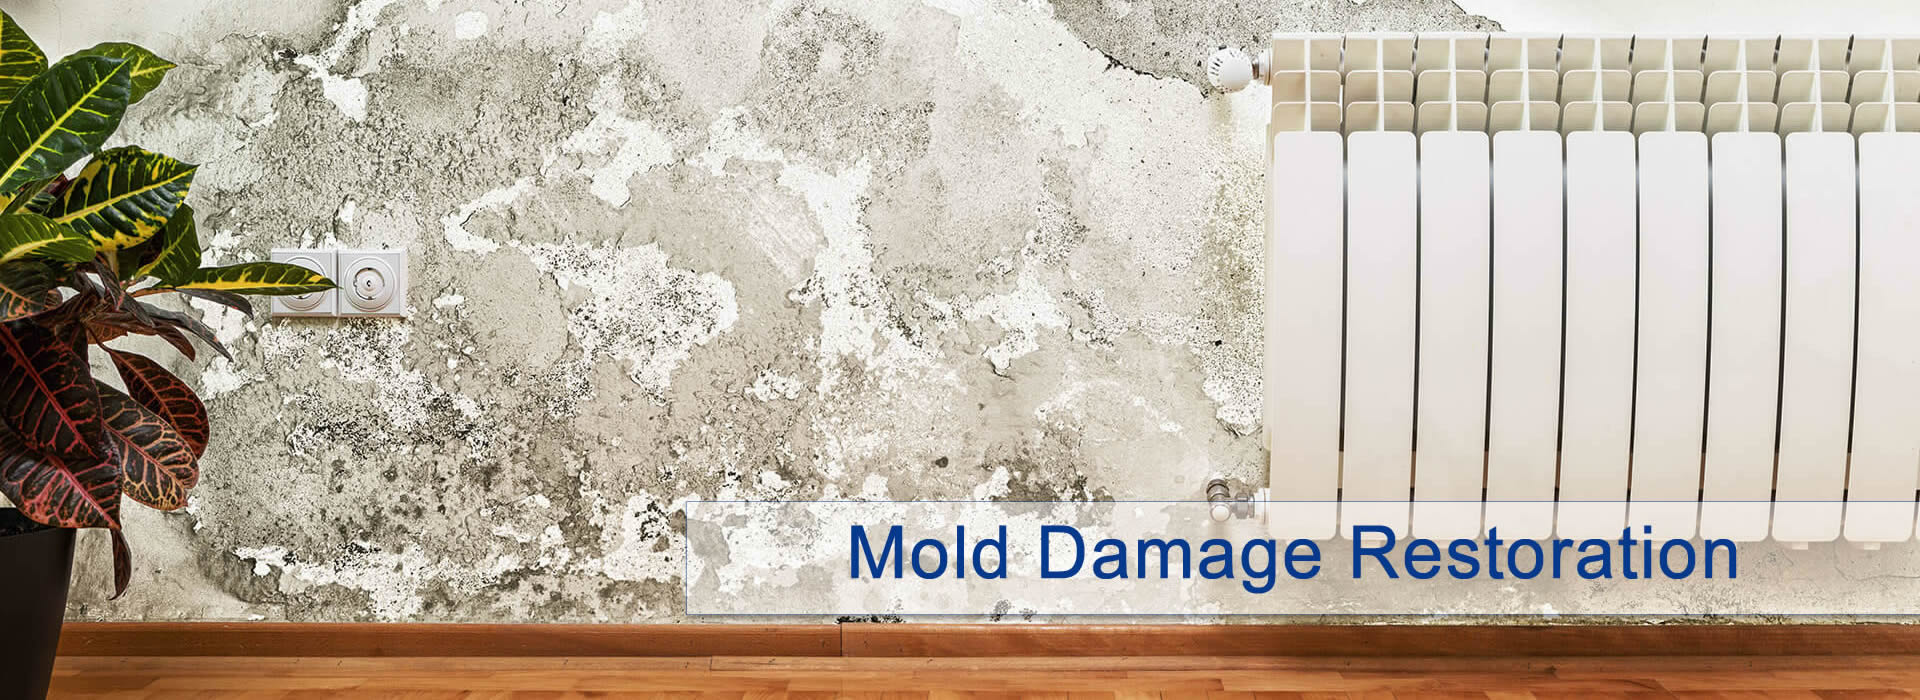 Mold Damage Restoration Dallas / Fort Worth